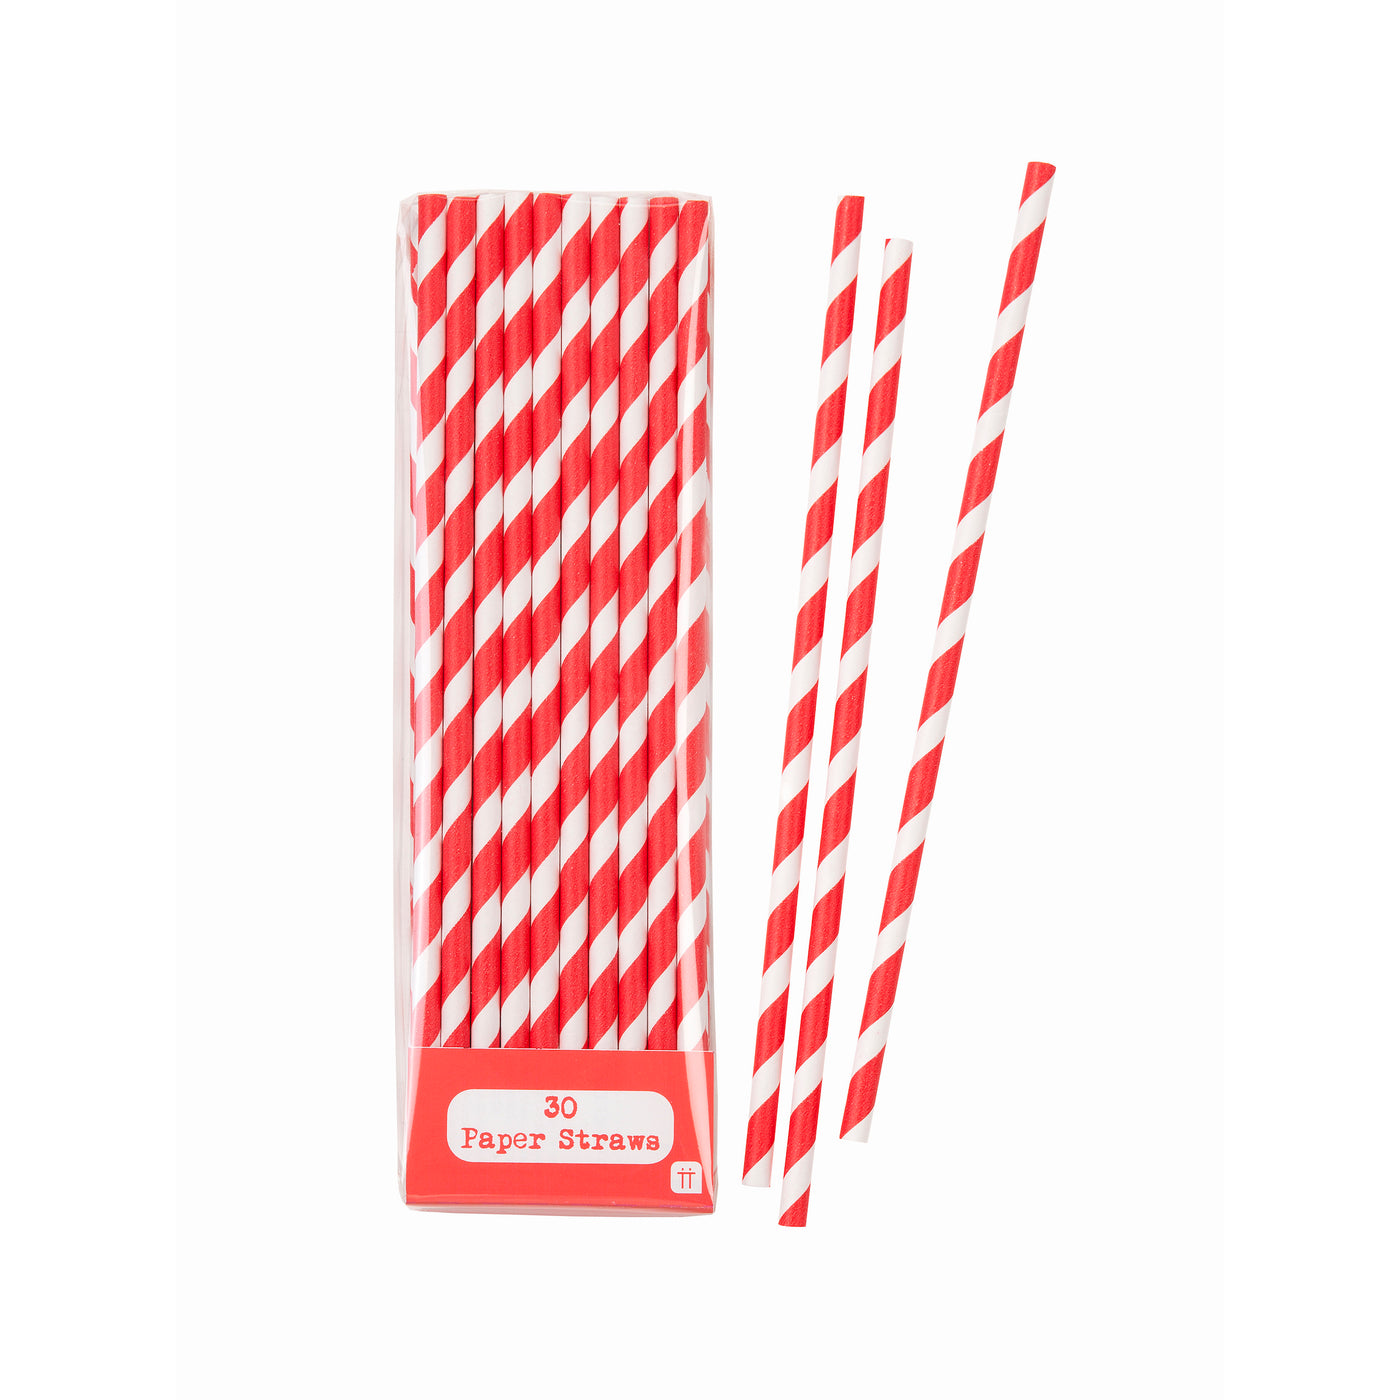 red paper straws in a pack of 20